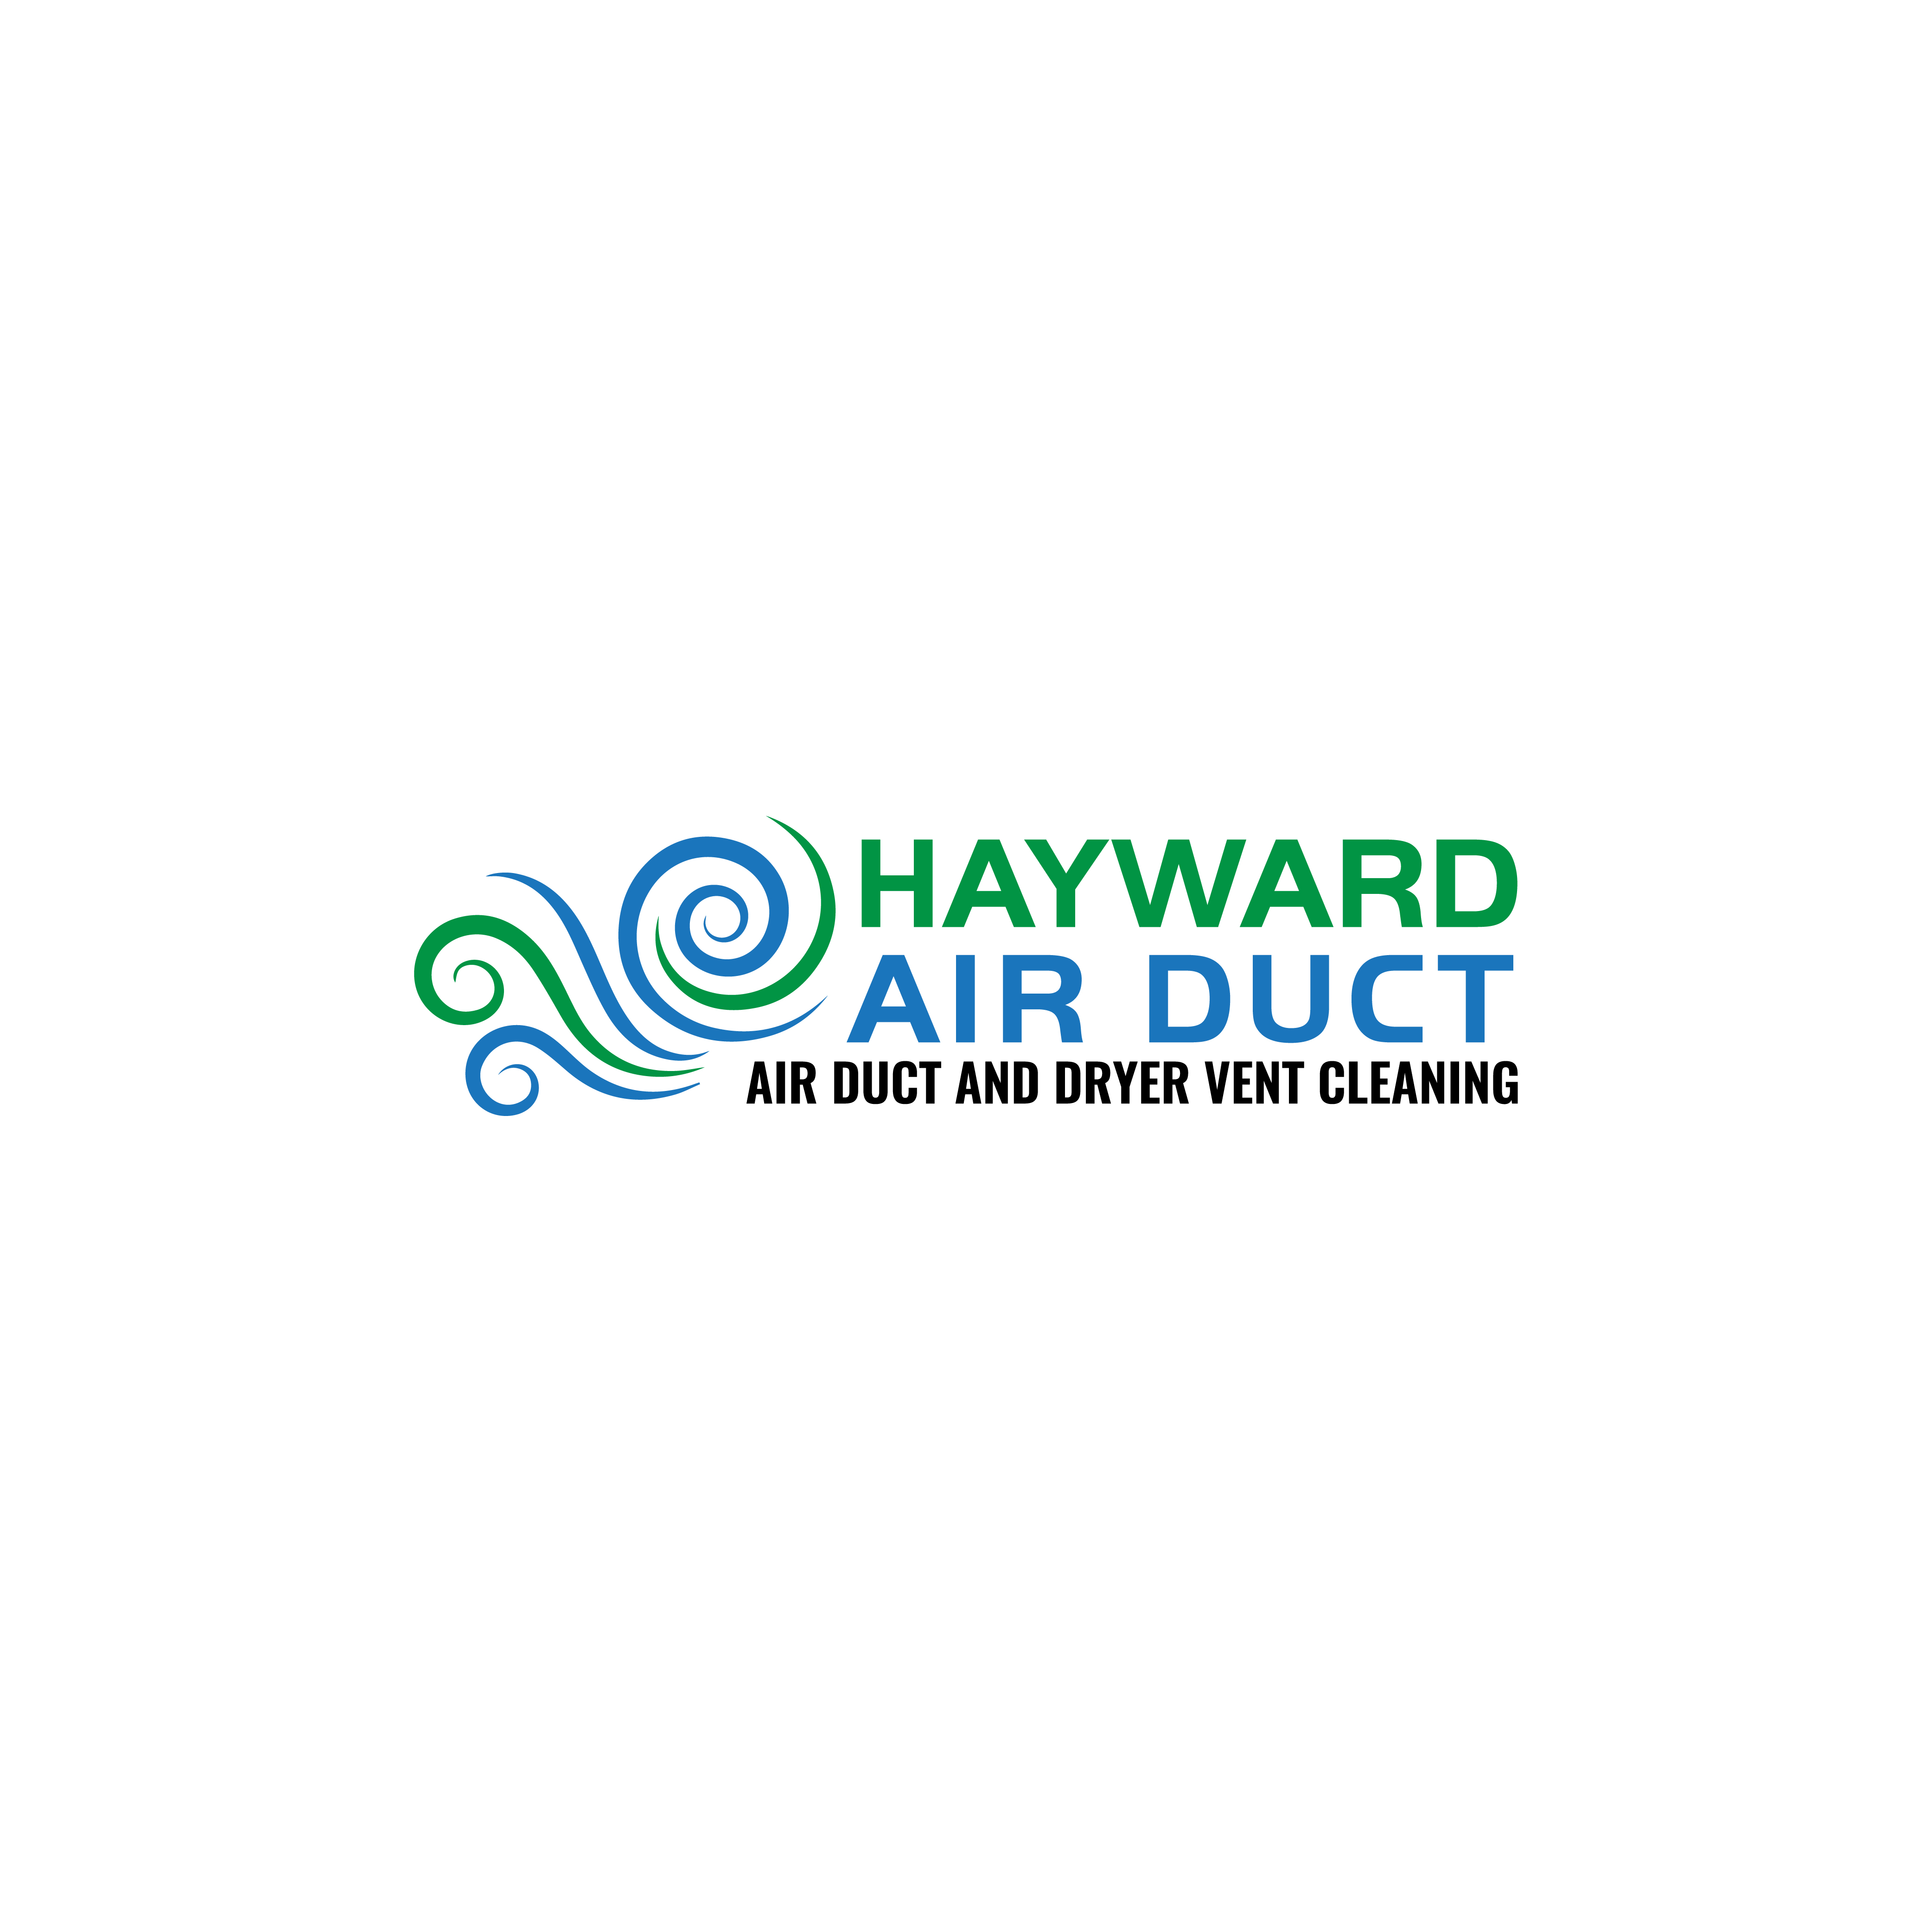 Hayward Air Duct Cleaning